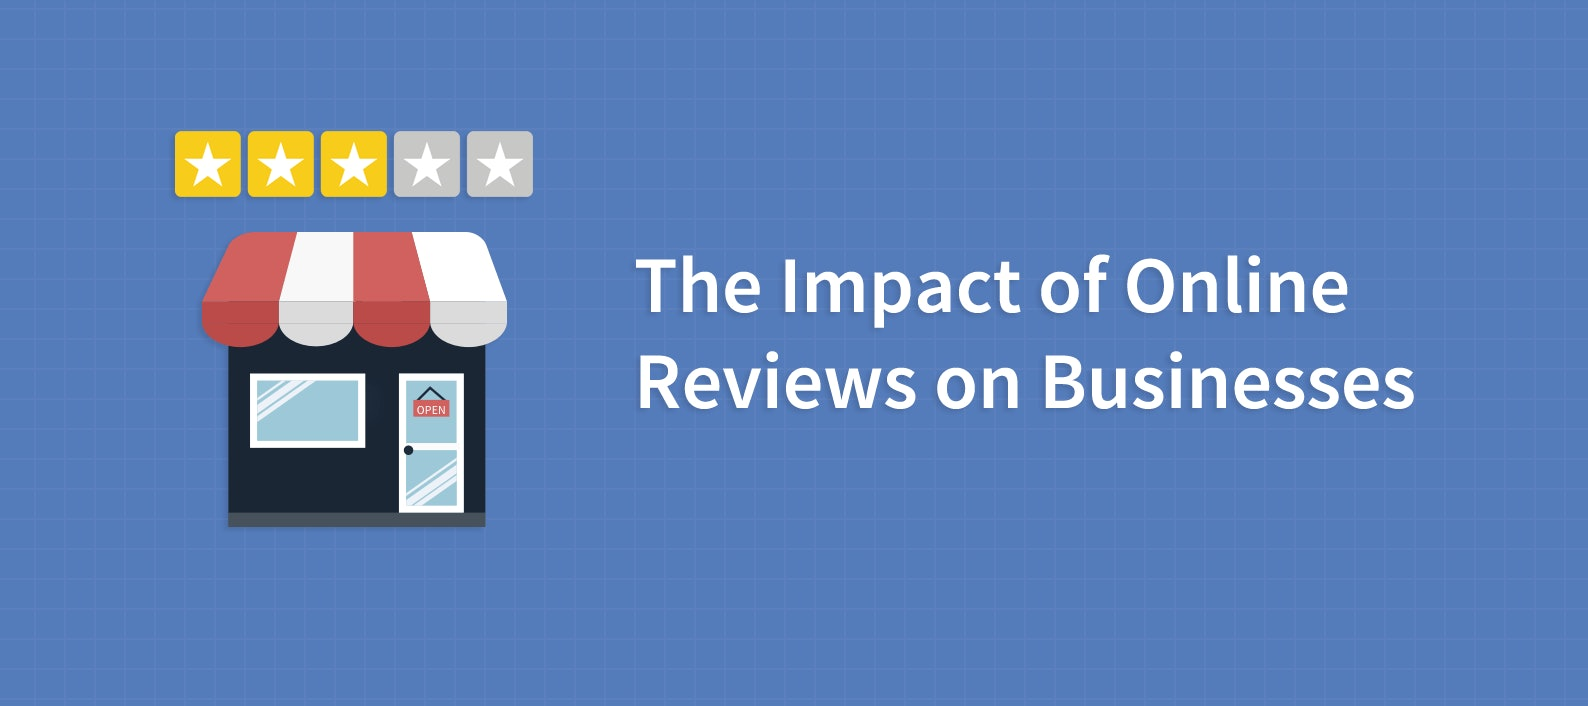 How Do Online Reviews Impact Businesses? Find Out Pros and Cons